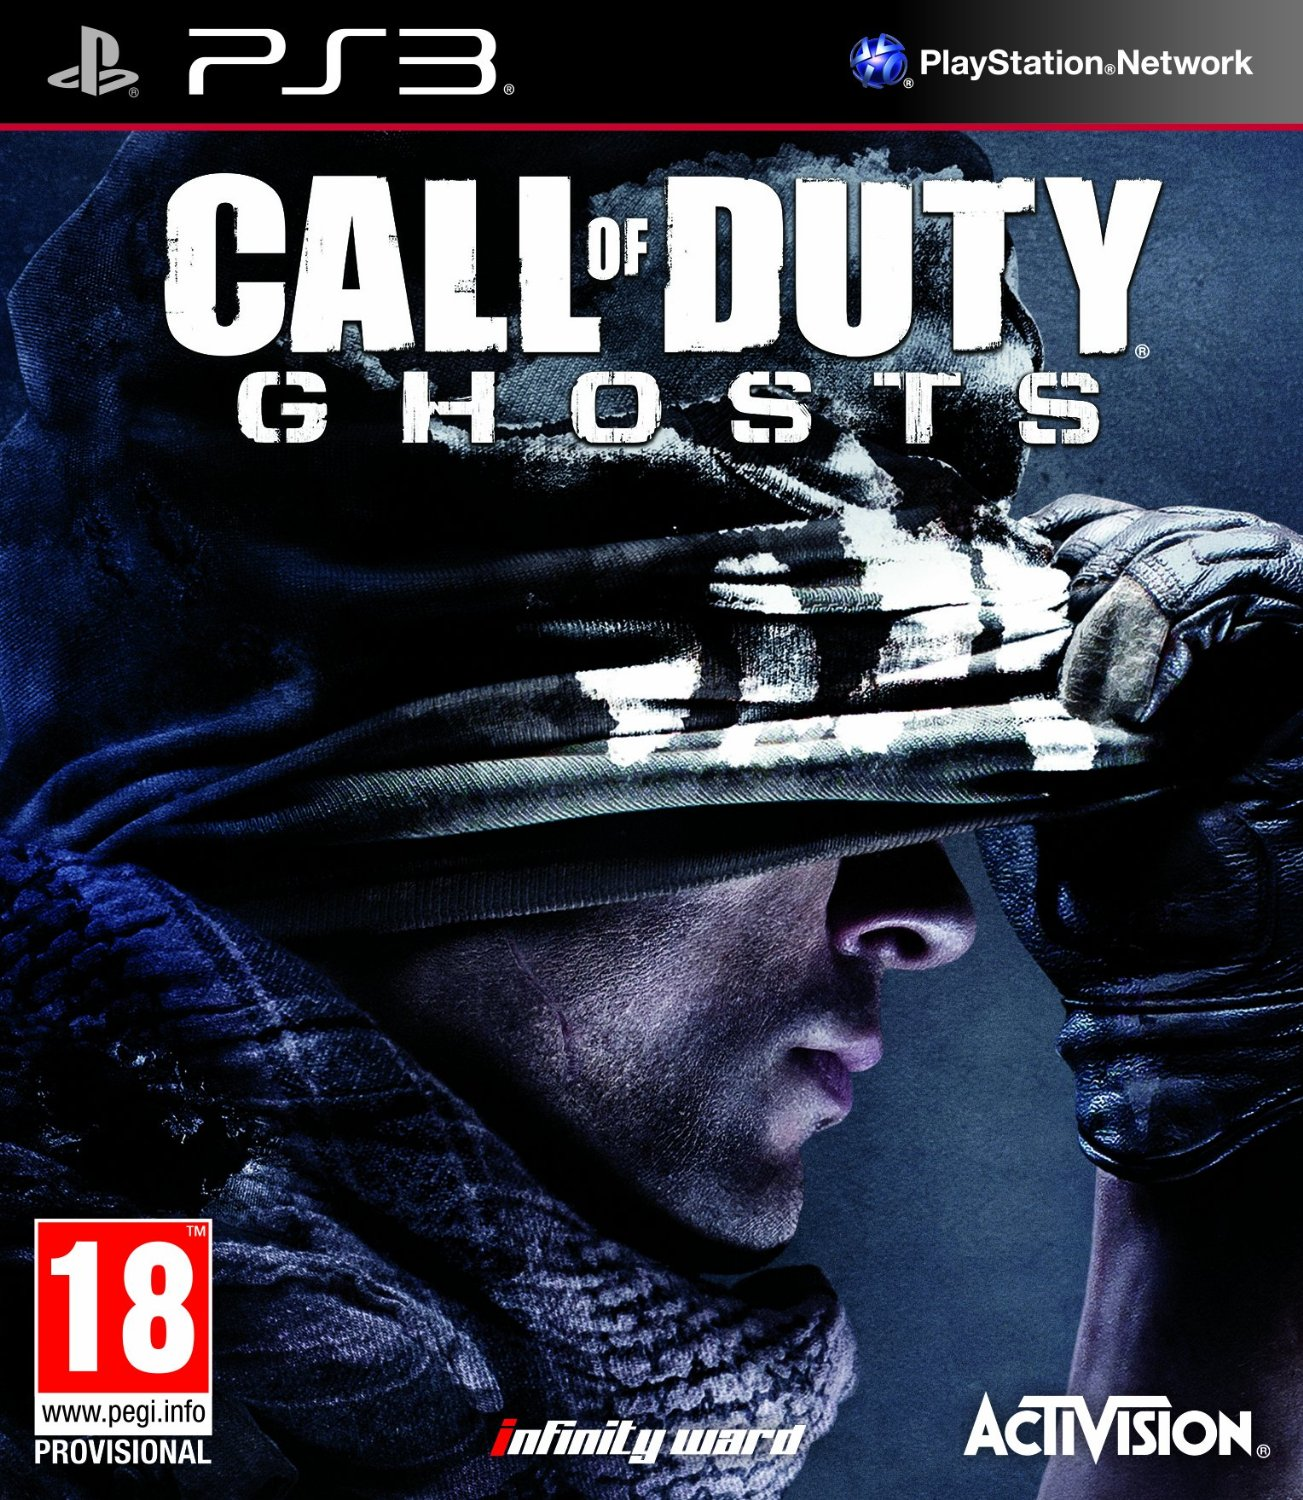 CALL OF DUTY®: GHOSTS lanzamiento trailer